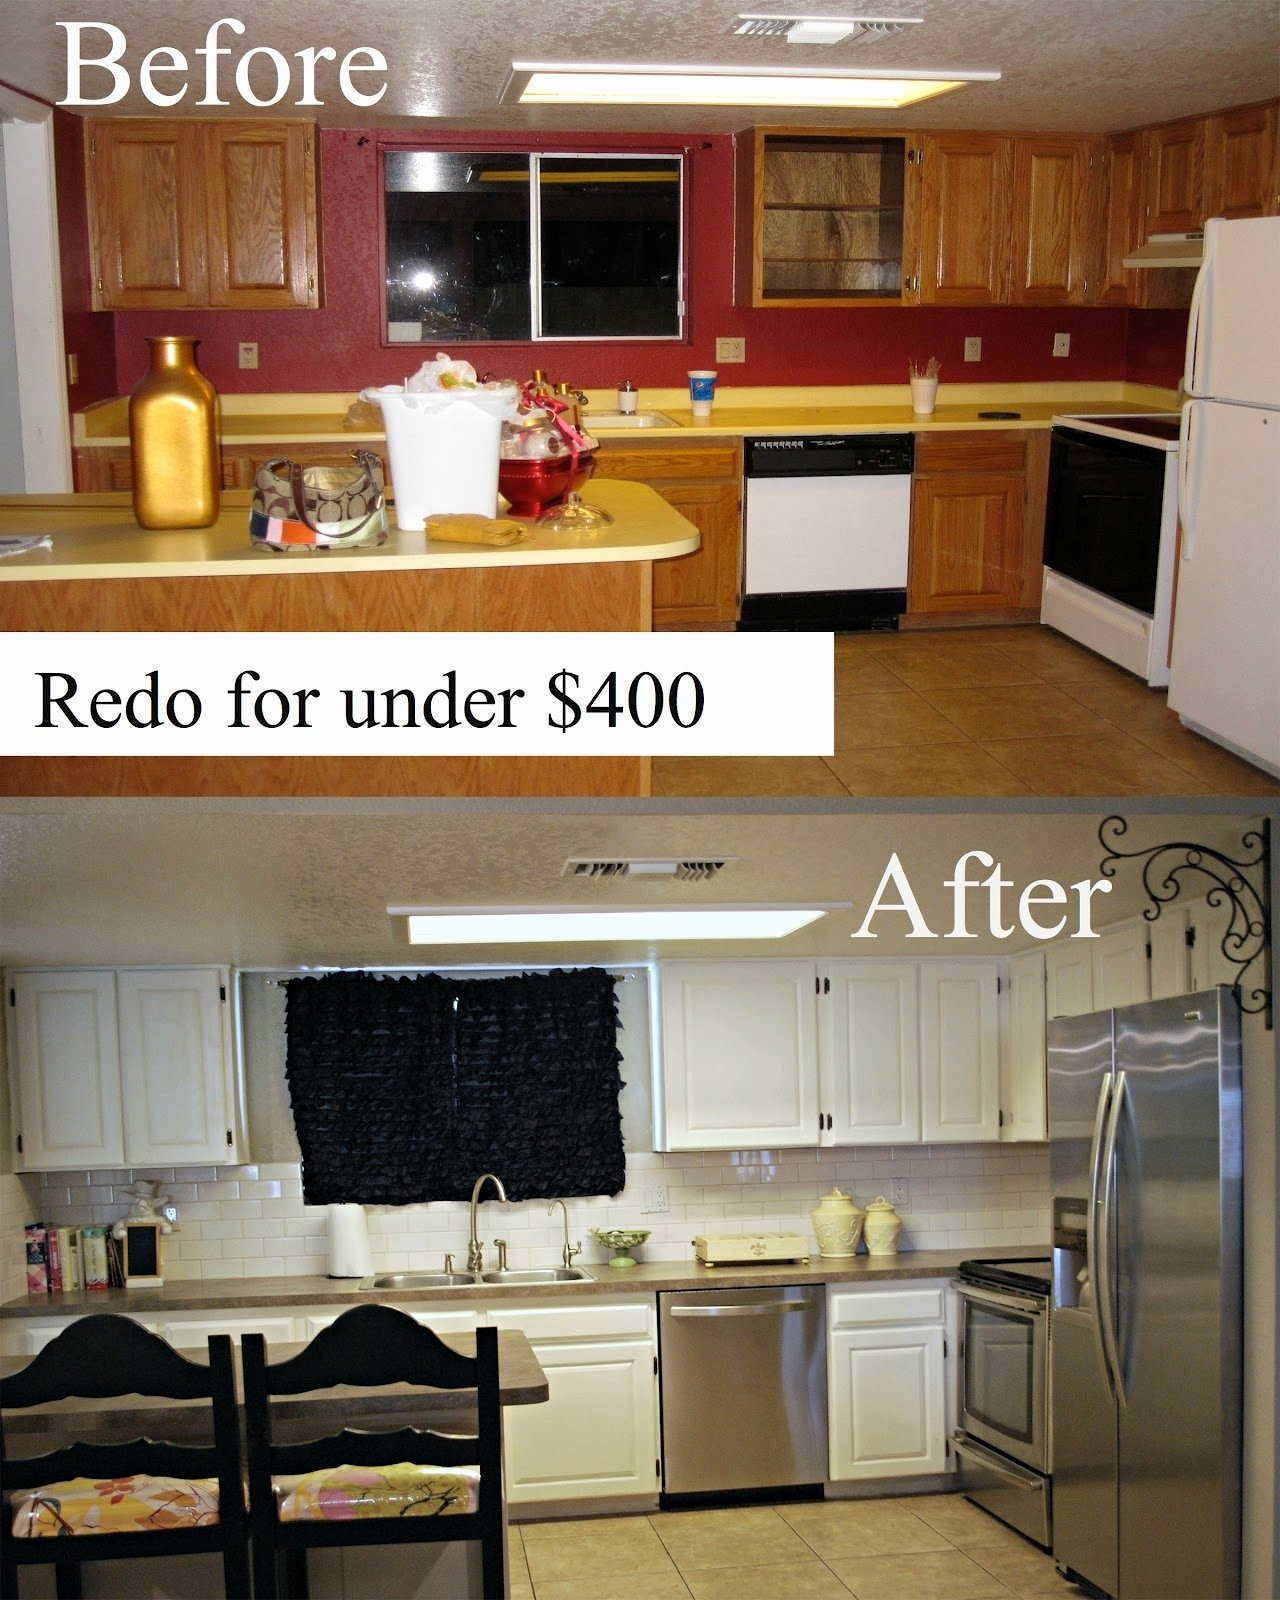 10 Fantastic Kitchen Makeover Ideas On A Budget budget kitchen makeover ideas fresh kitchen ideas kitchen cabinet 2020